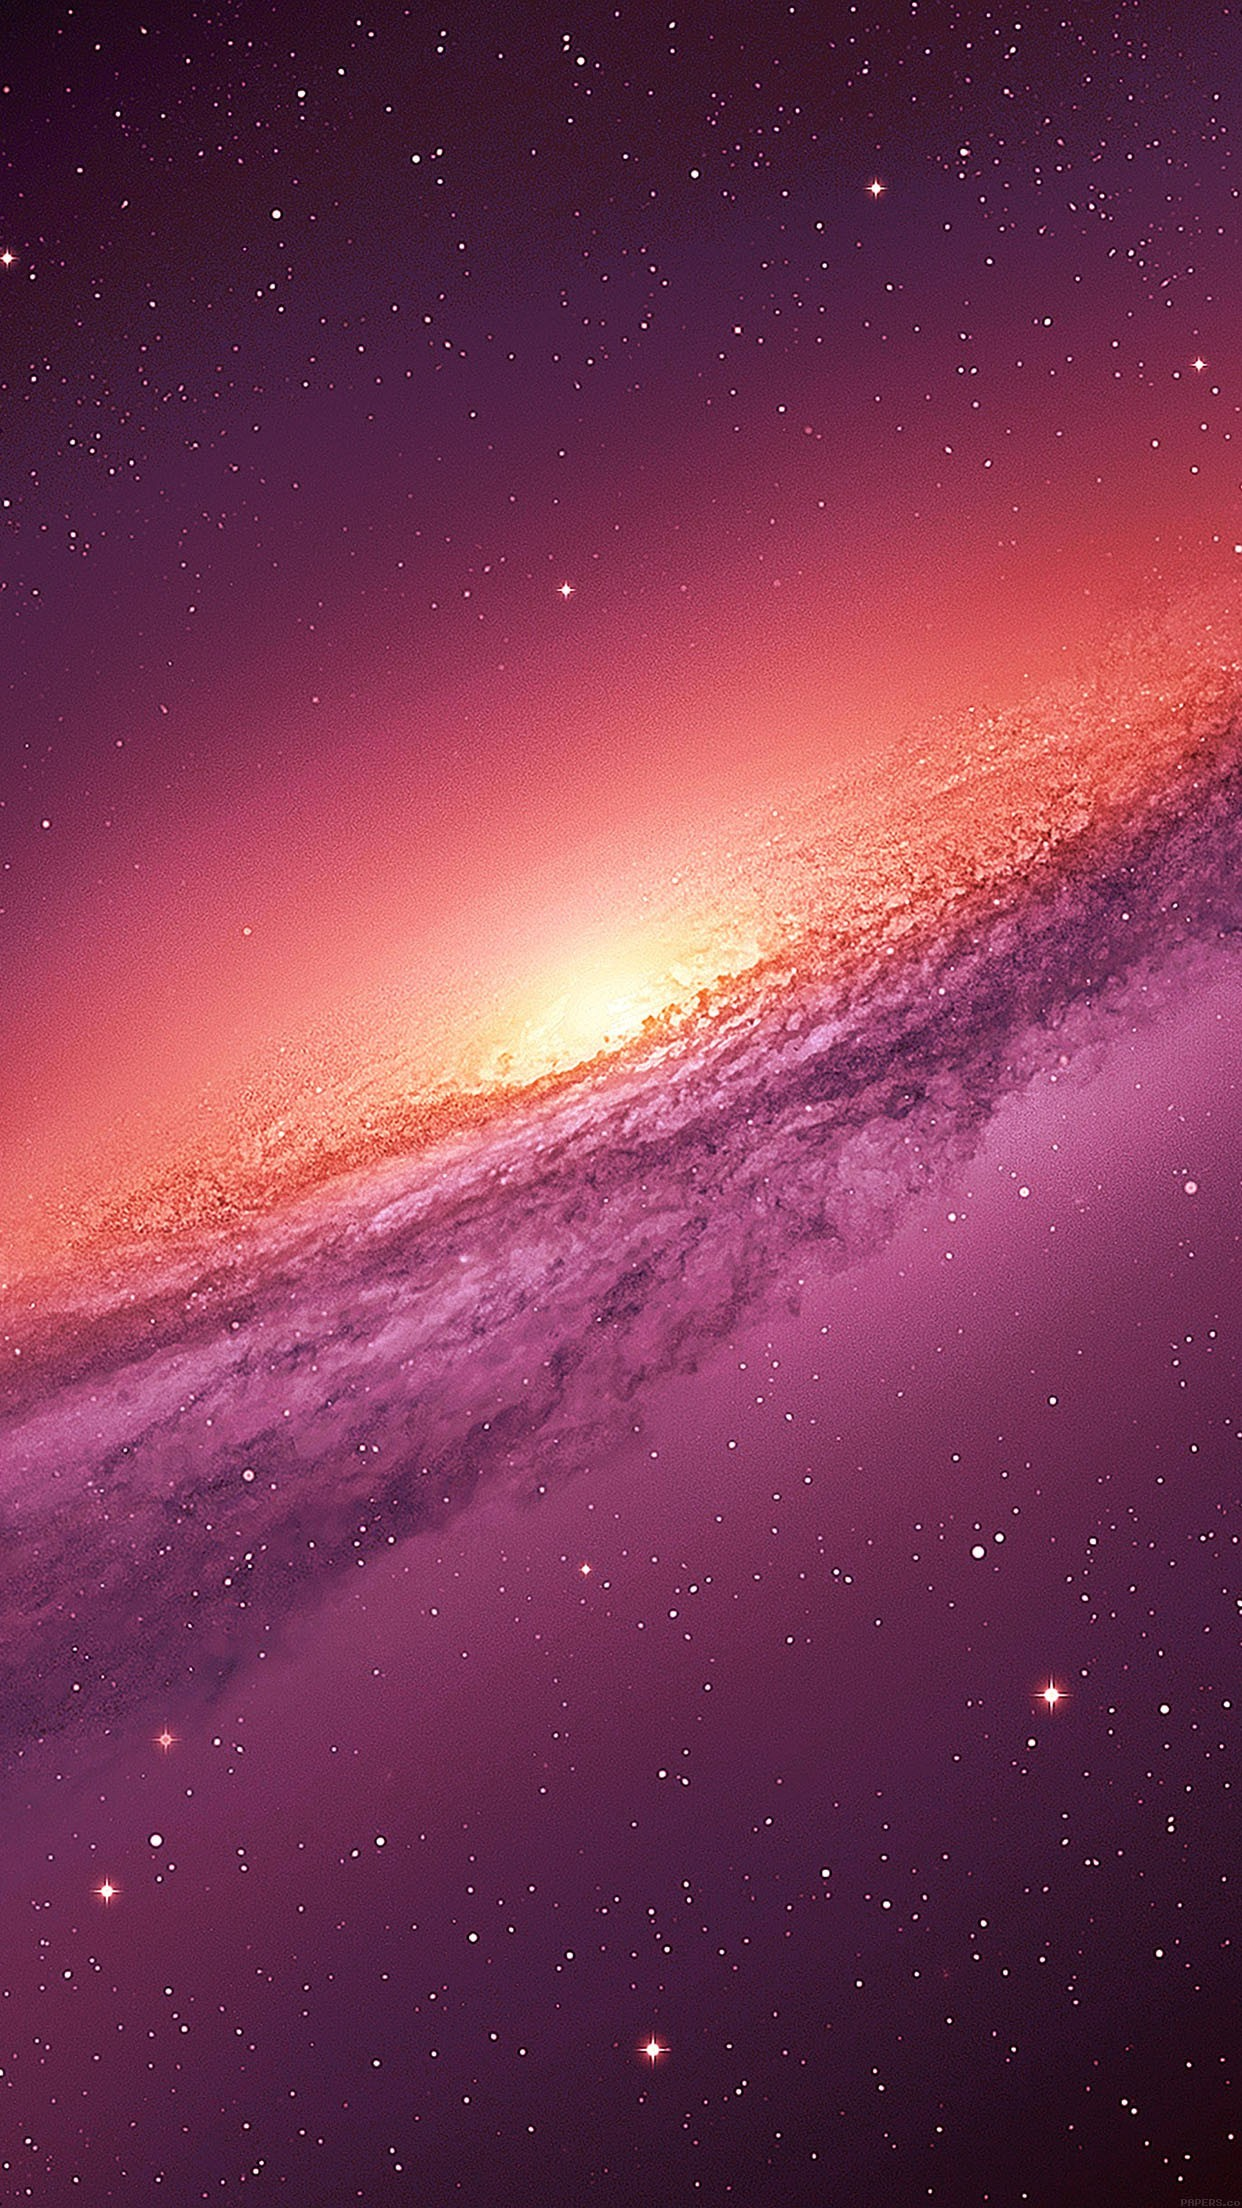 8k Space Wallpaper 23 Images